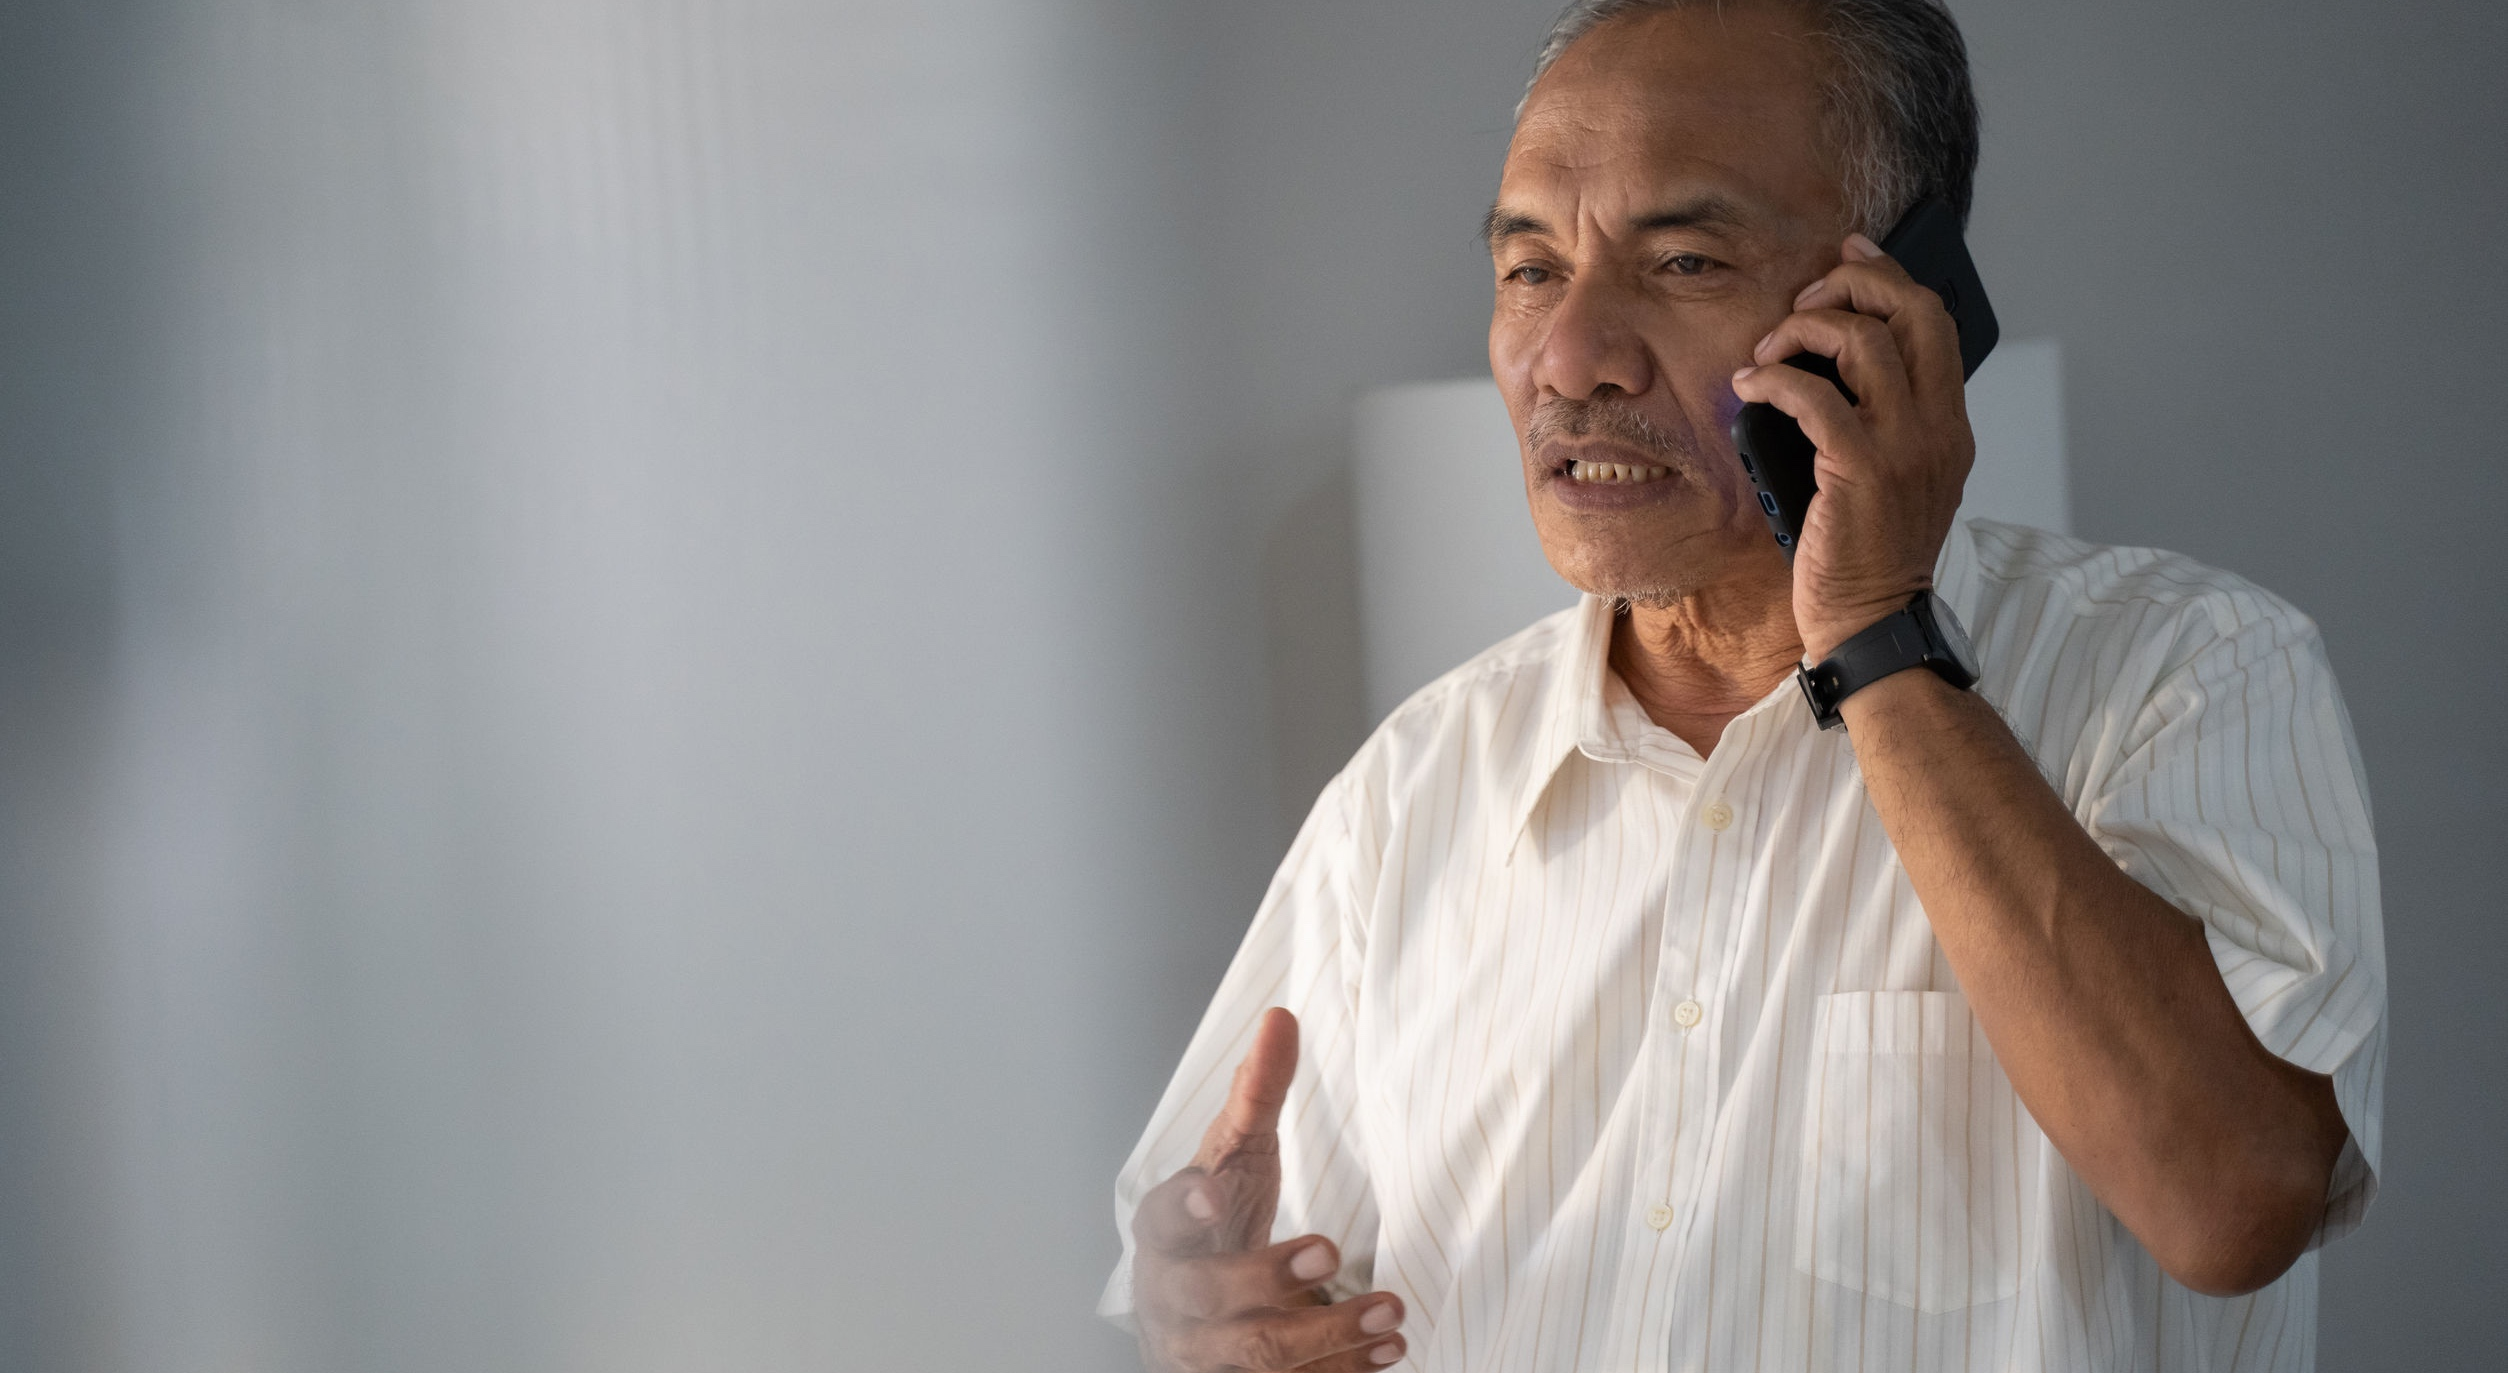 Man making a call on a cell phone